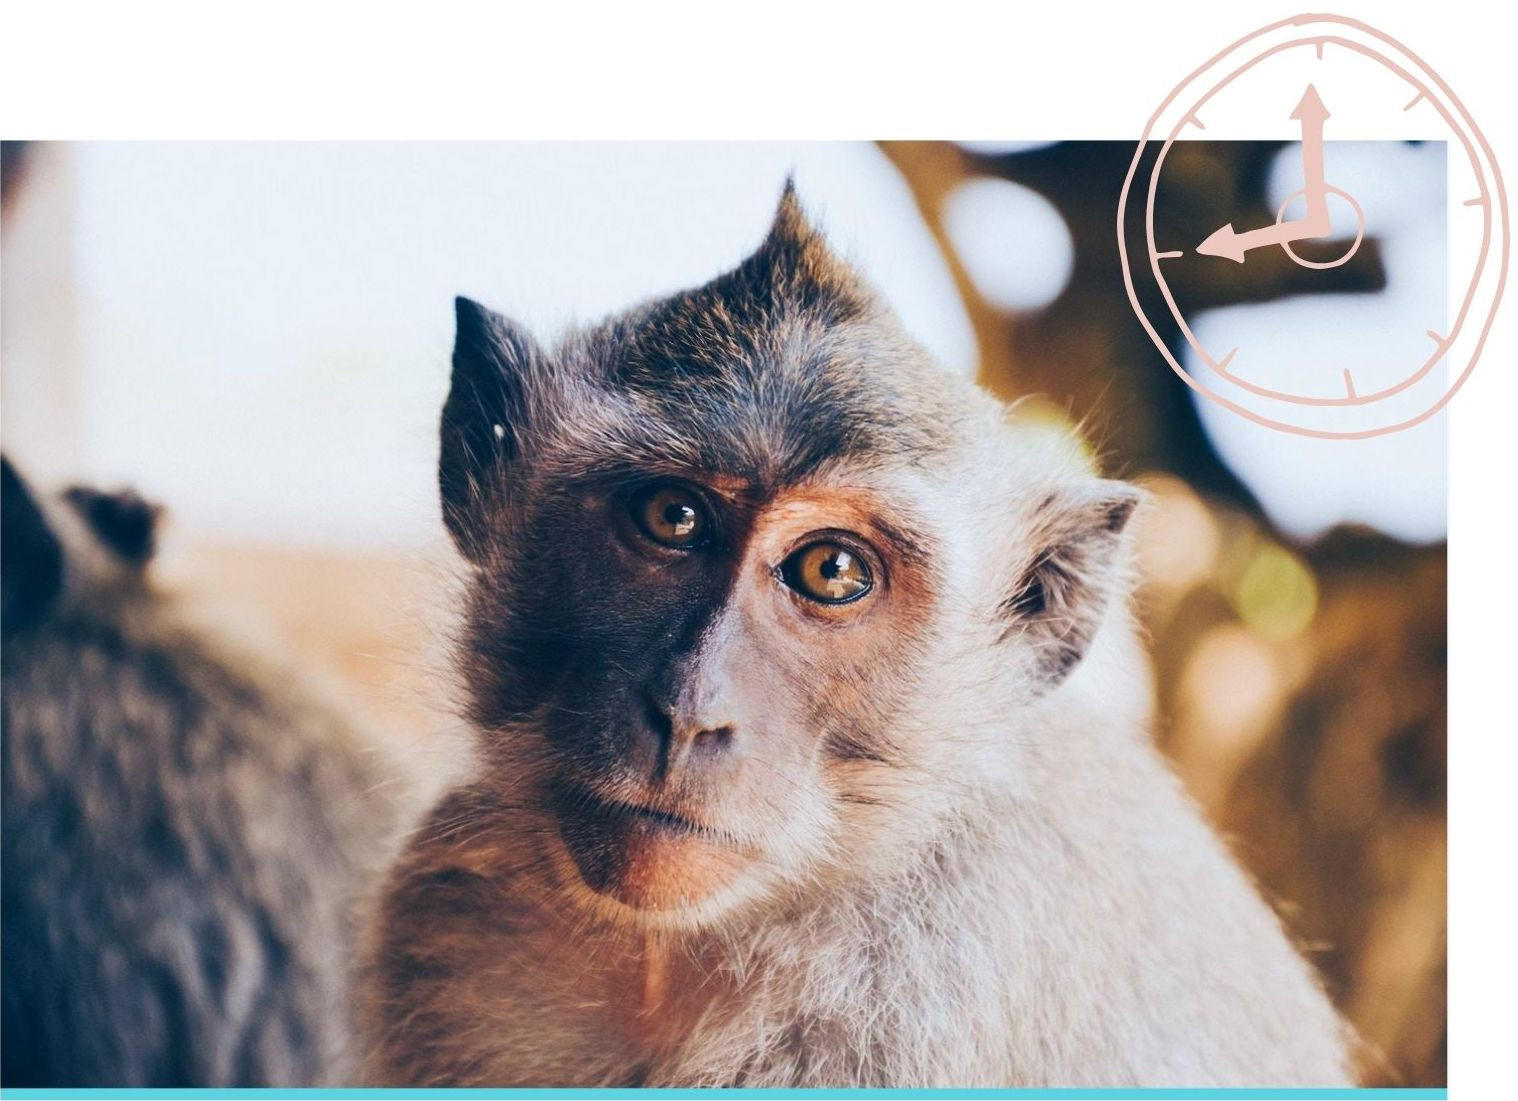 monkey looking at camera with questioning look